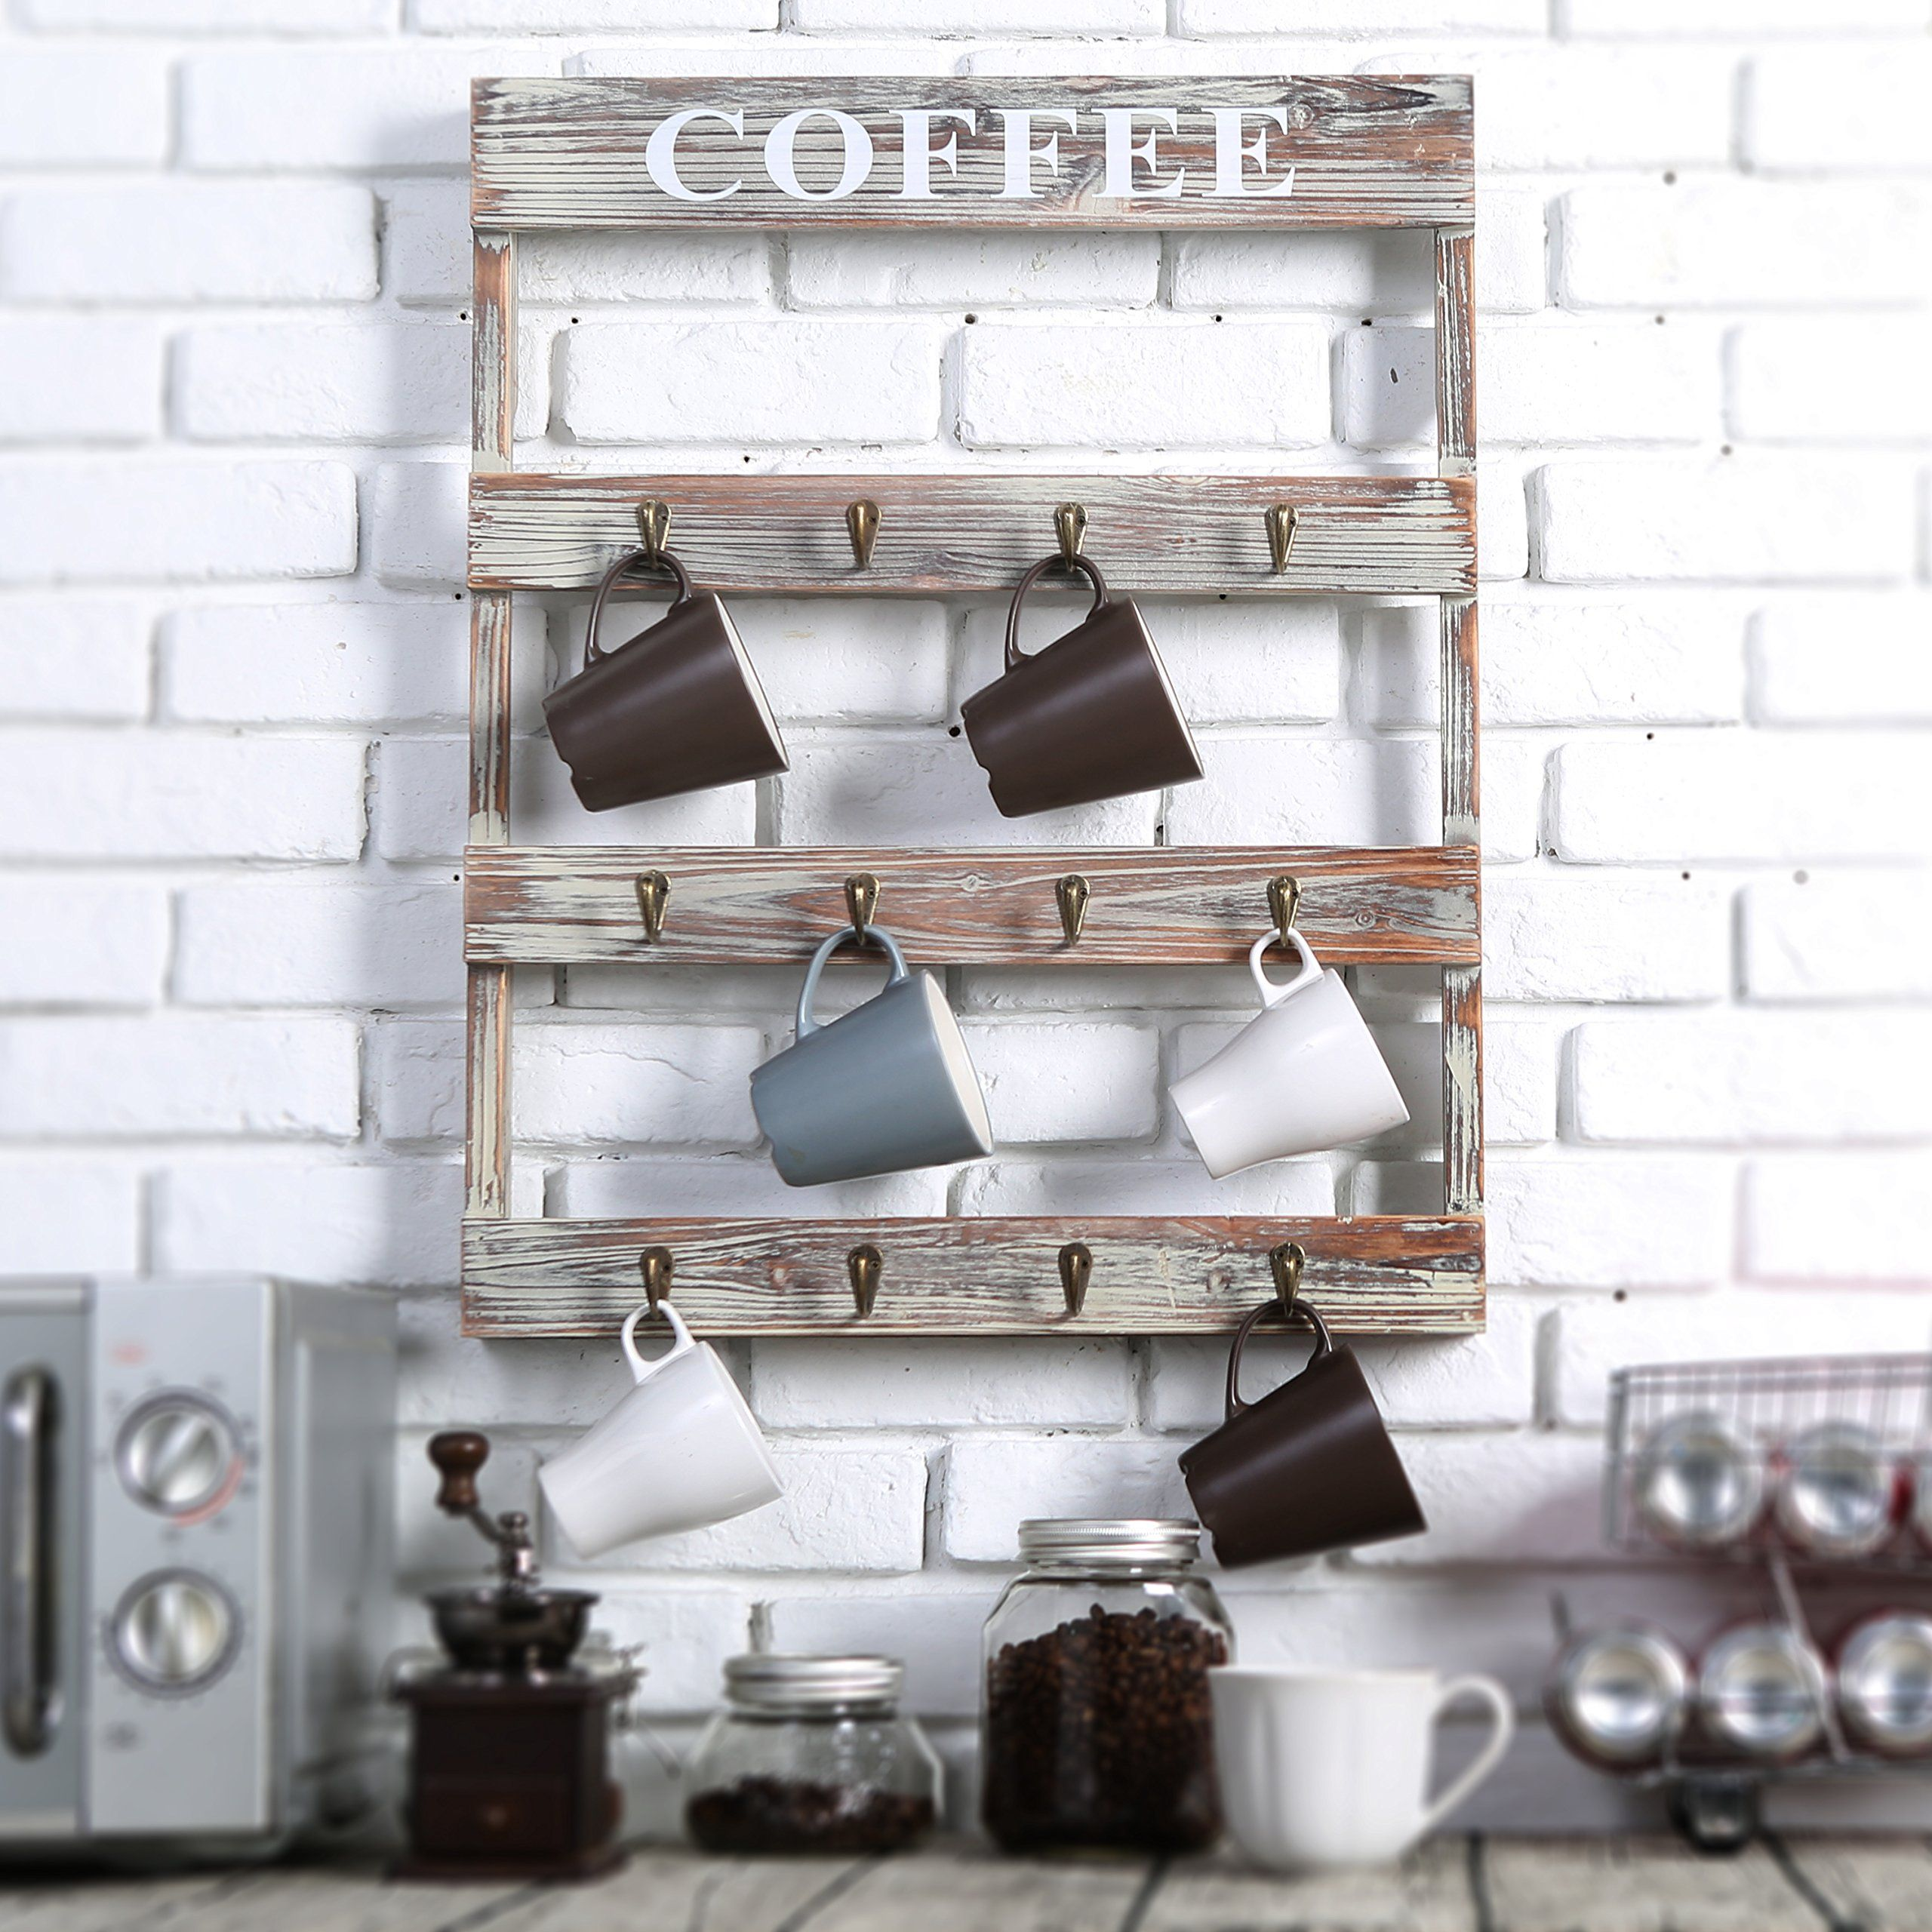 12 Hooks Rustic Wall Mounted Wood Coffee Mug Holder Kitchen Storage Rack Large See This Great Pro Coffee Mug Display Coffee Mug Holder Kitchen Wall Storage